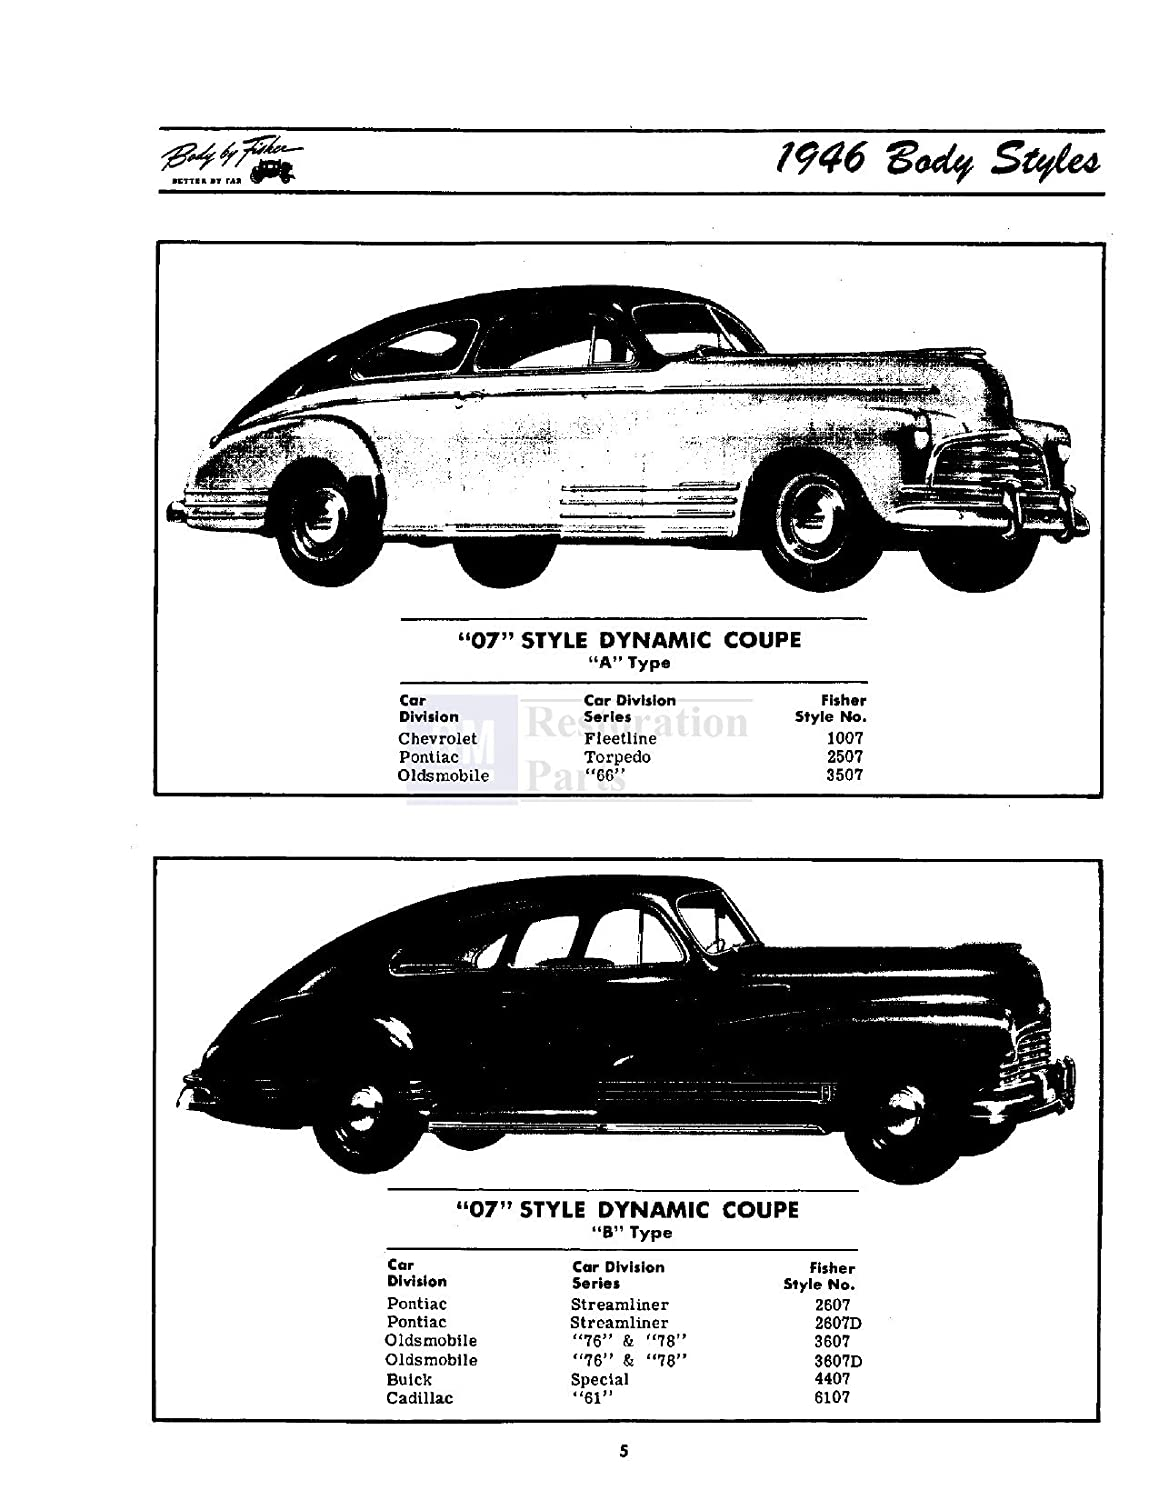 Amazon.com: 1946 1947 1948 Buick Cadillac Body Service Shop Repair Manual  Glass Trim Panels: Automotive